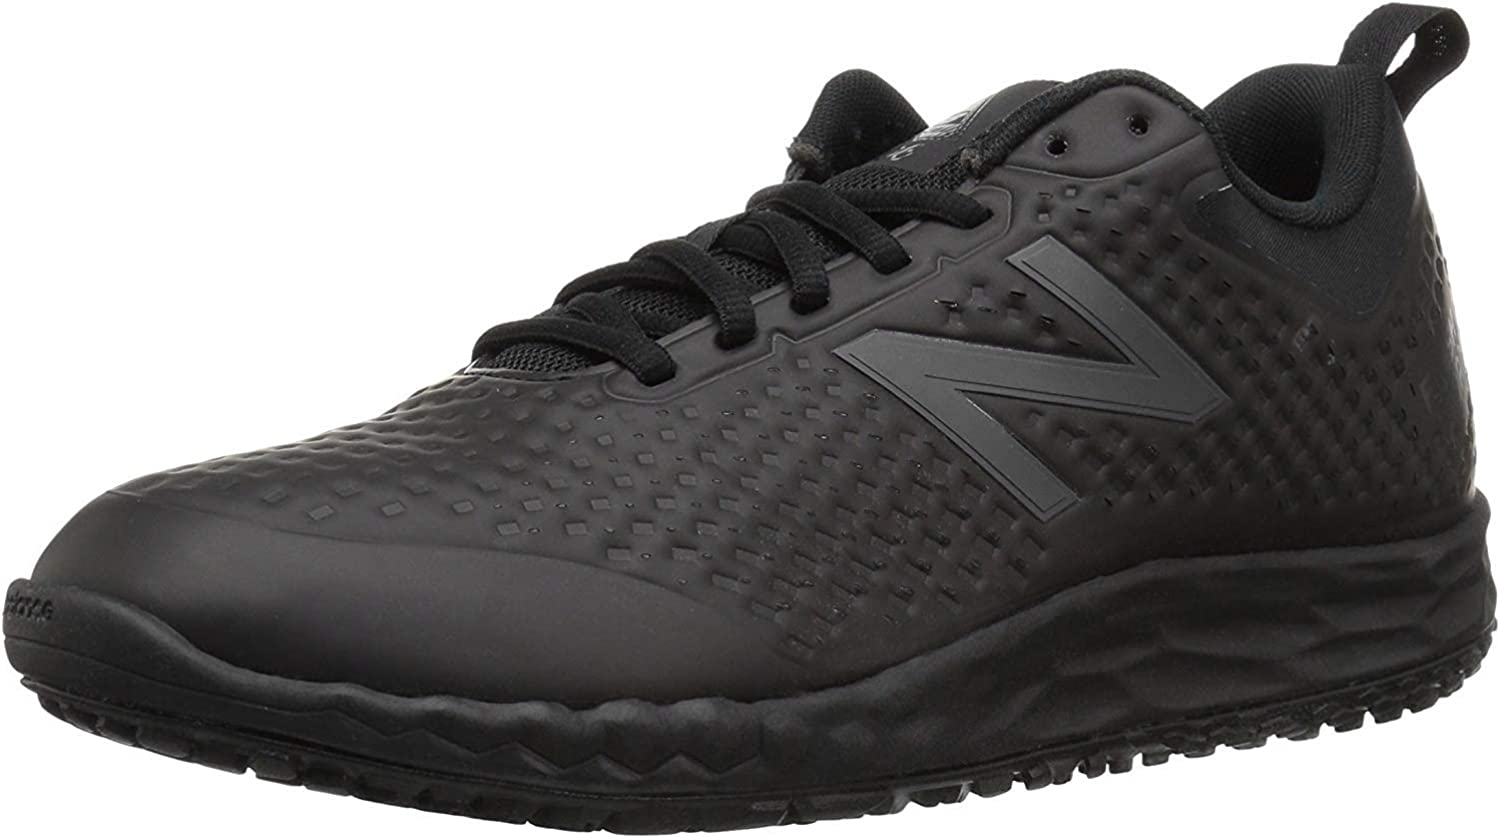 New Balance Mens MID806K1 Low Top Lace